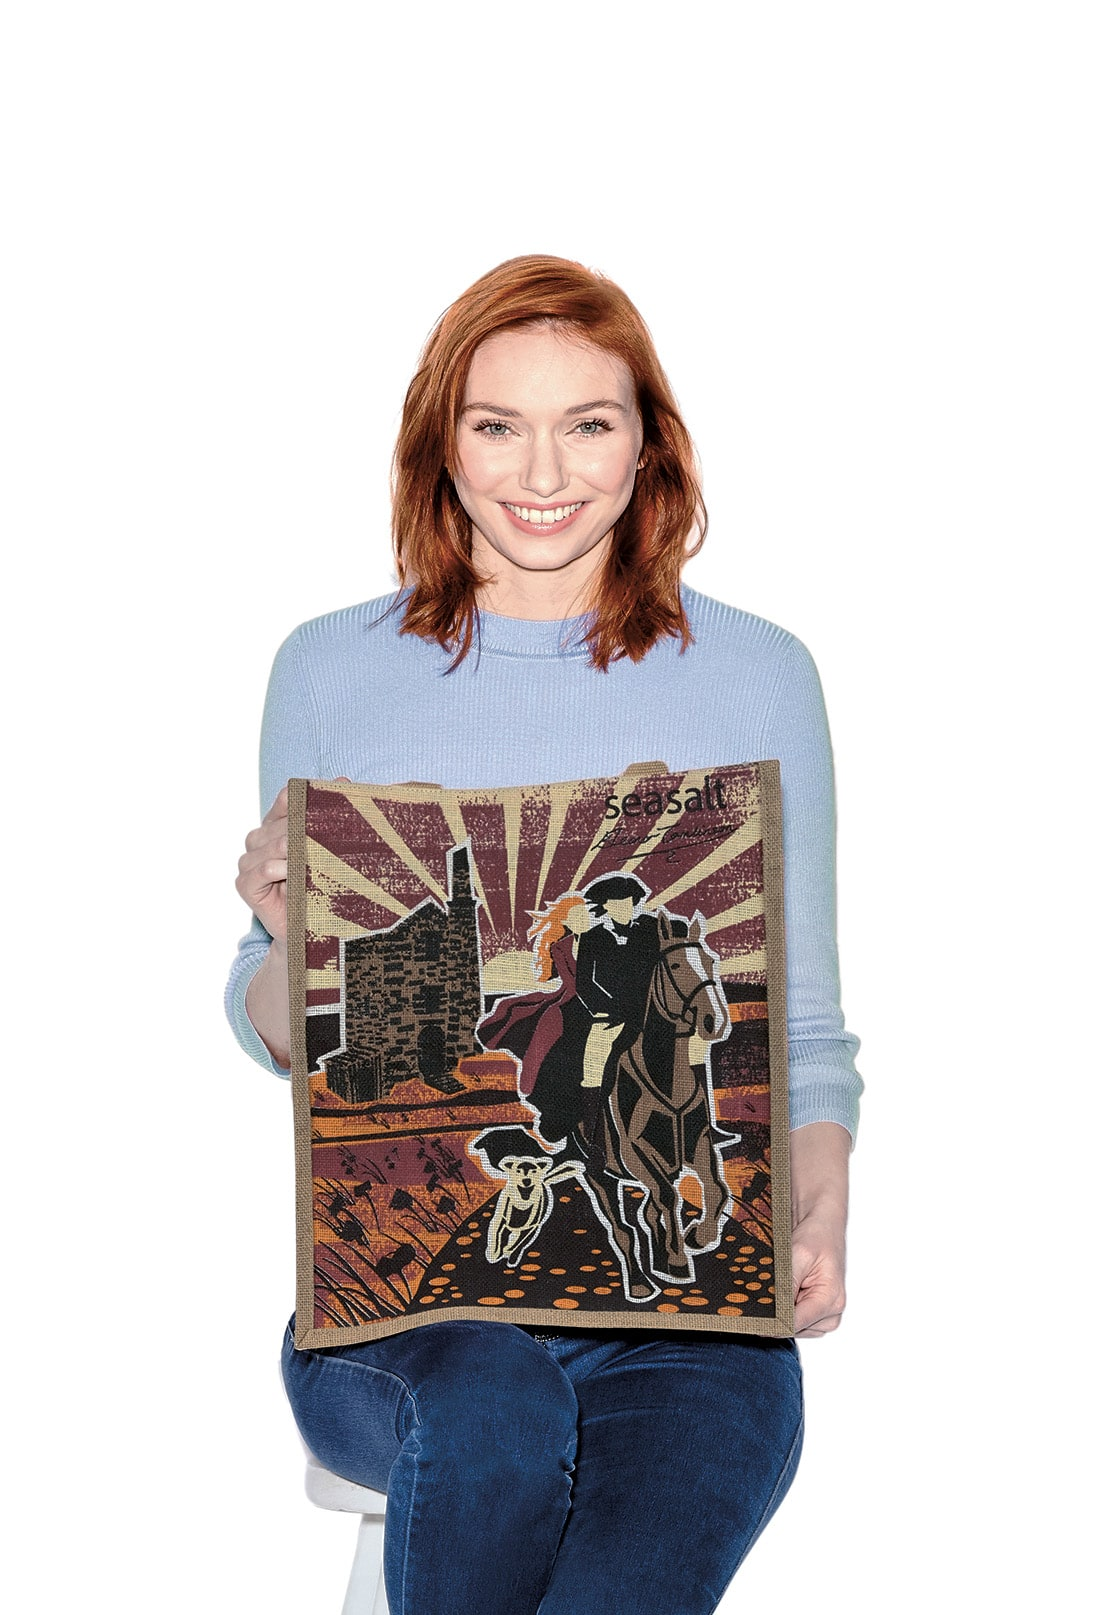 Eleanor Tomlinson with her Poldark inspired Seasalt Charity Jute Bag